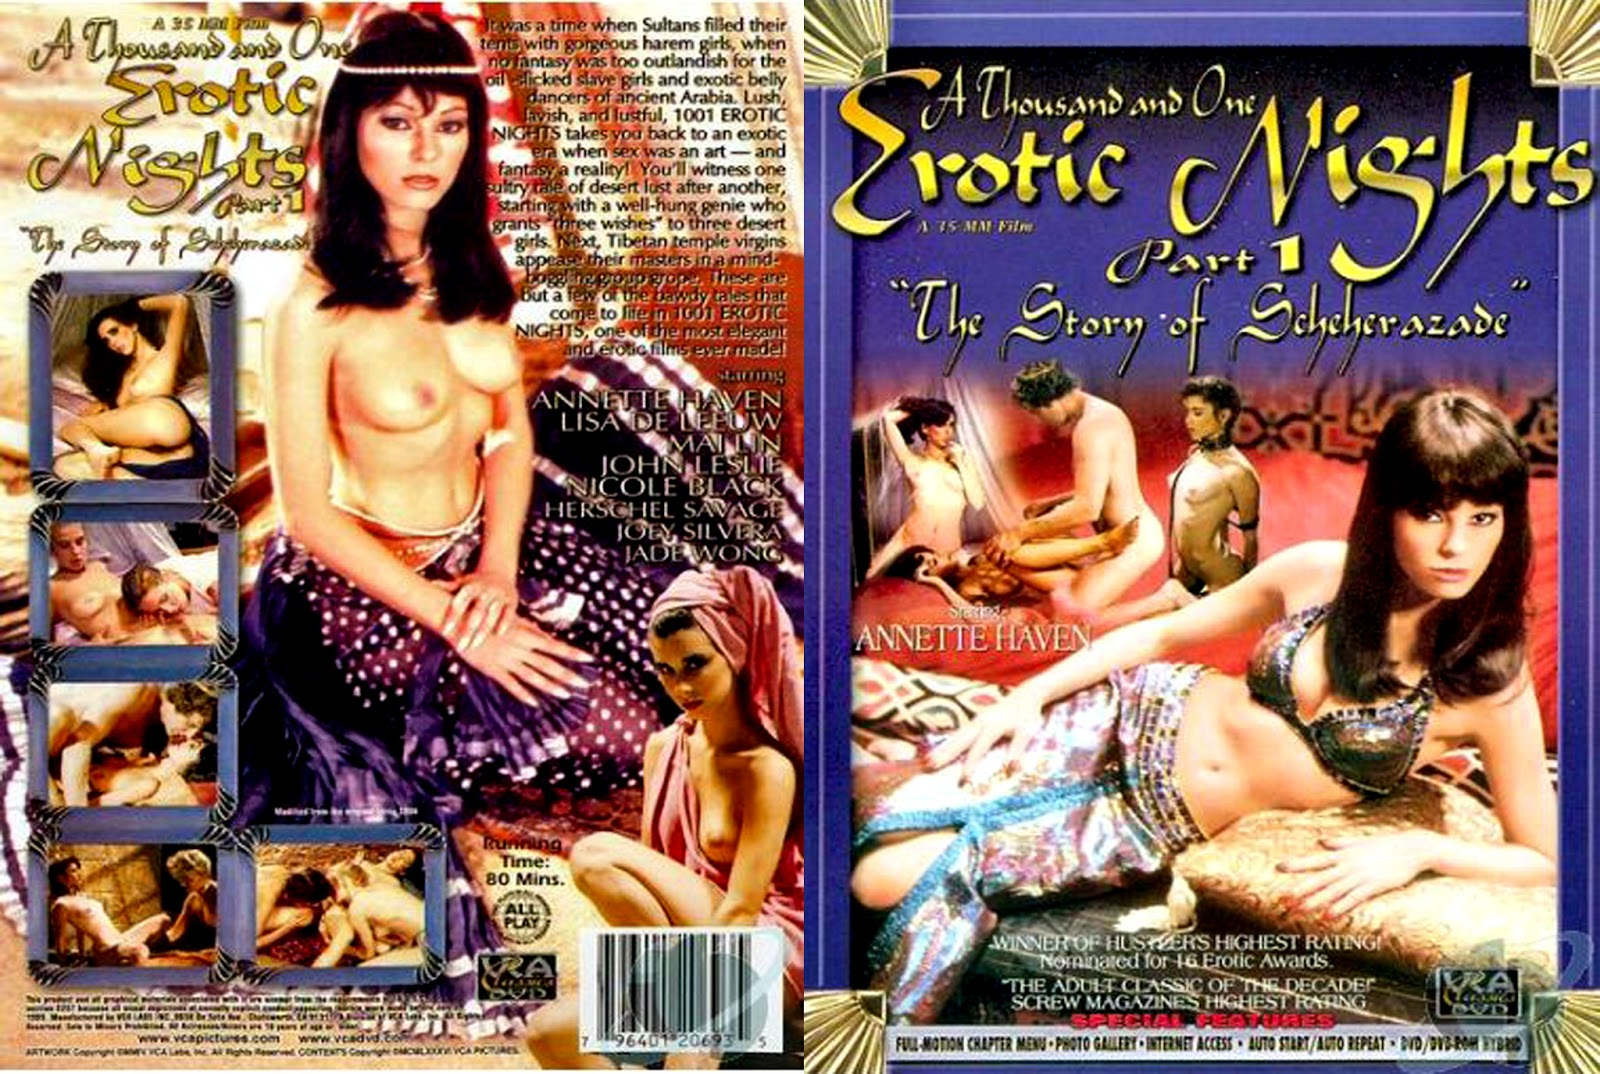 1001 erotic nights the story of scheherazade 1982 9